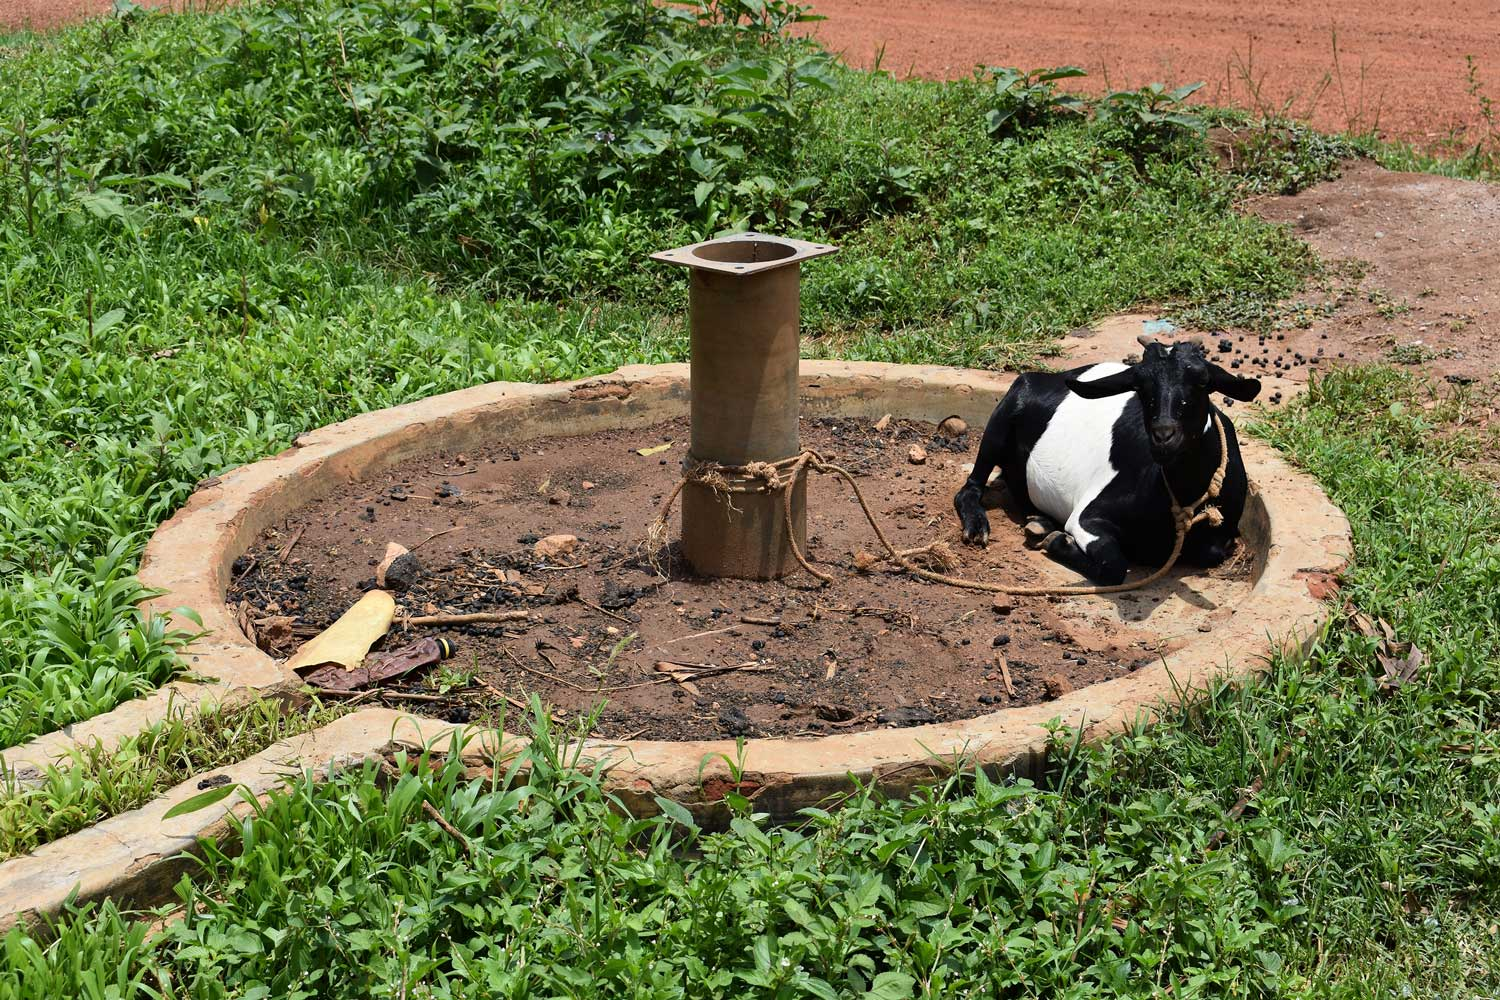 A goat tied to a pipe protruding from the ground